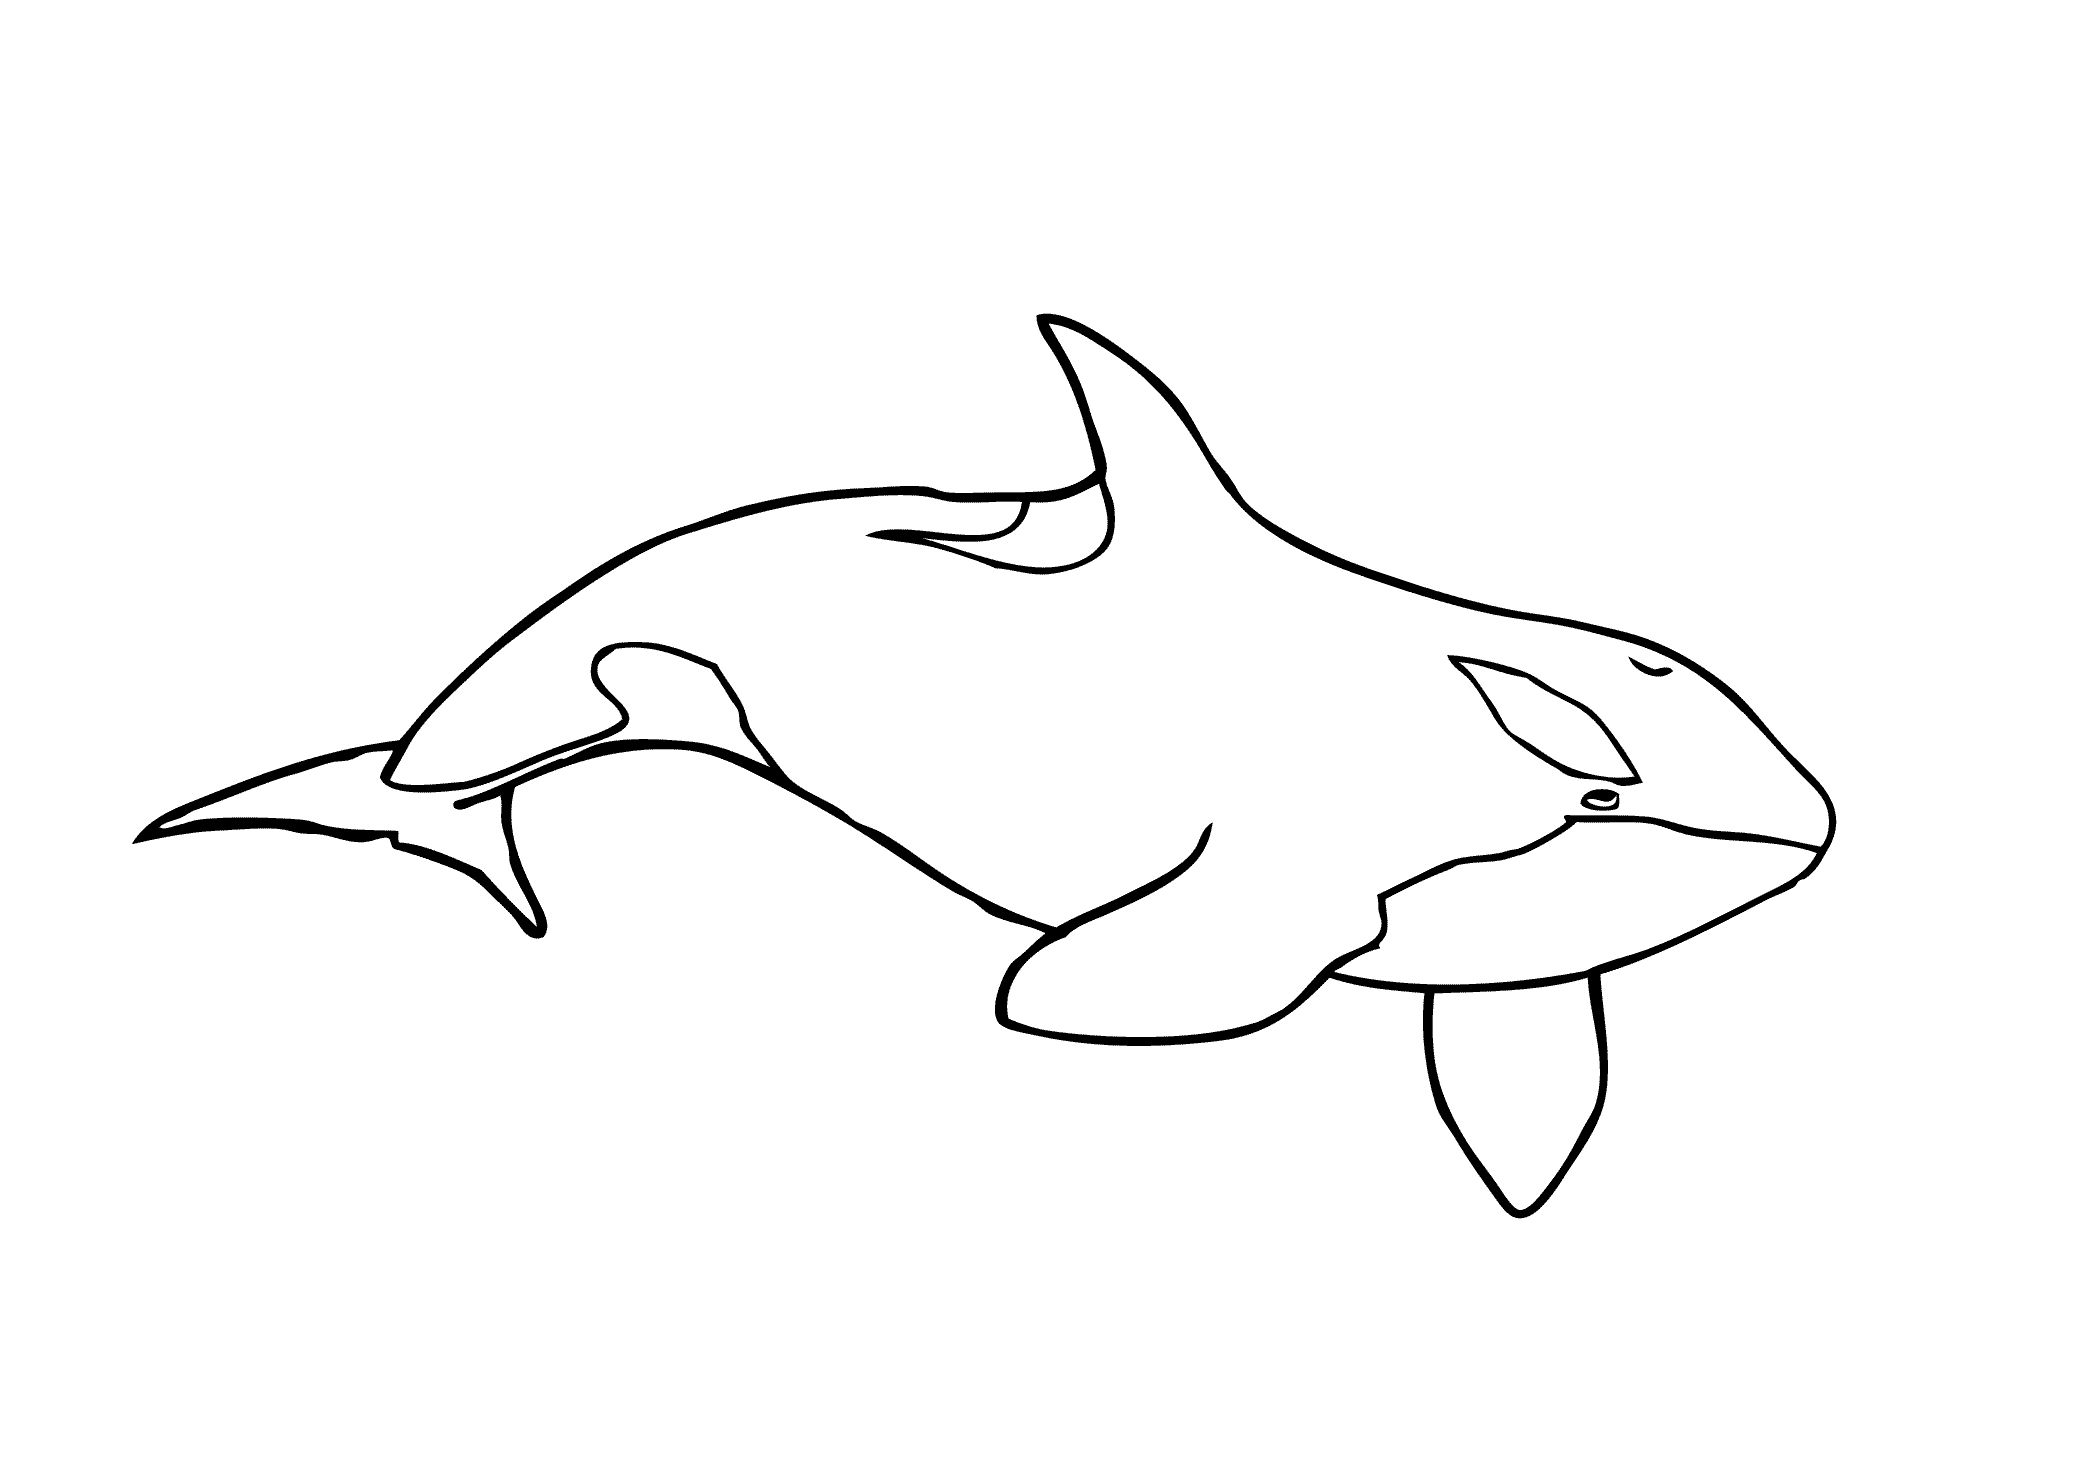 Shamu Coloring Pages Free In 2020 Whale Coloring Pages Shark Coloring Pages Animal Coloring Pages